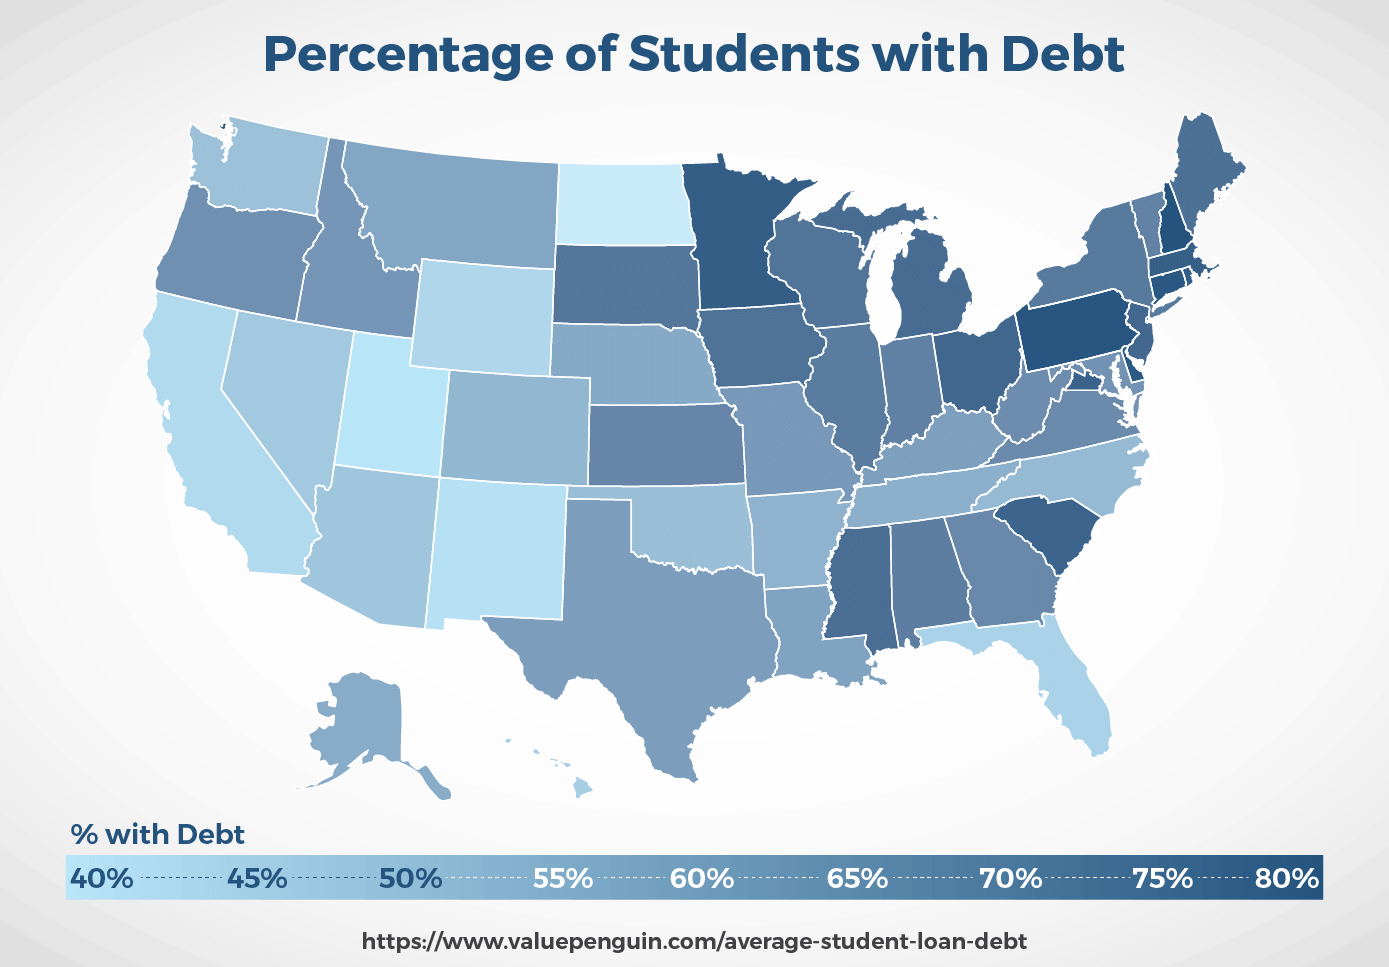 Percentage of students with debt in US